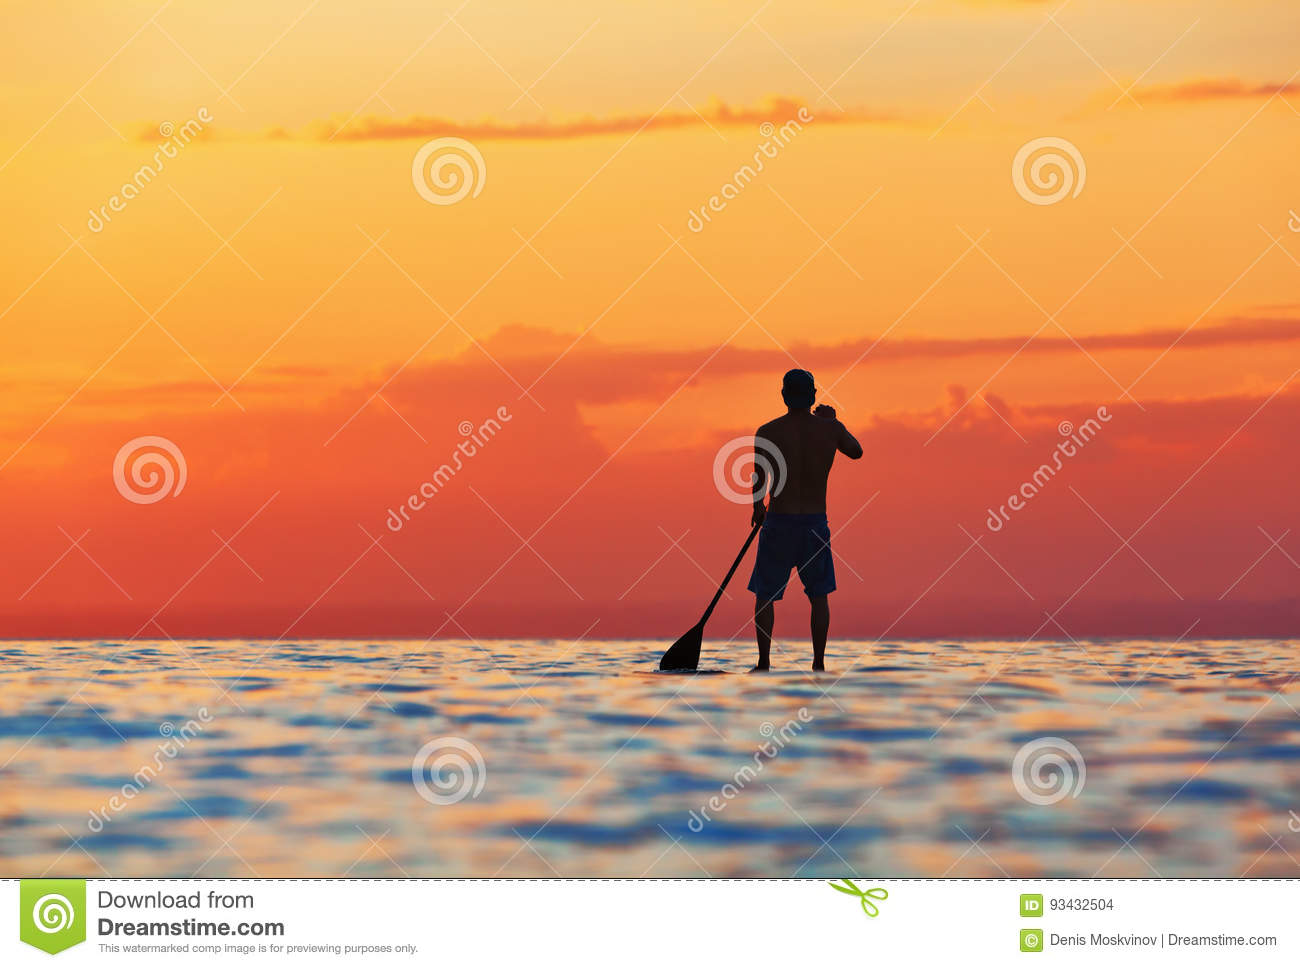 Black sunset silhouette of paddle boarder standing on SUP